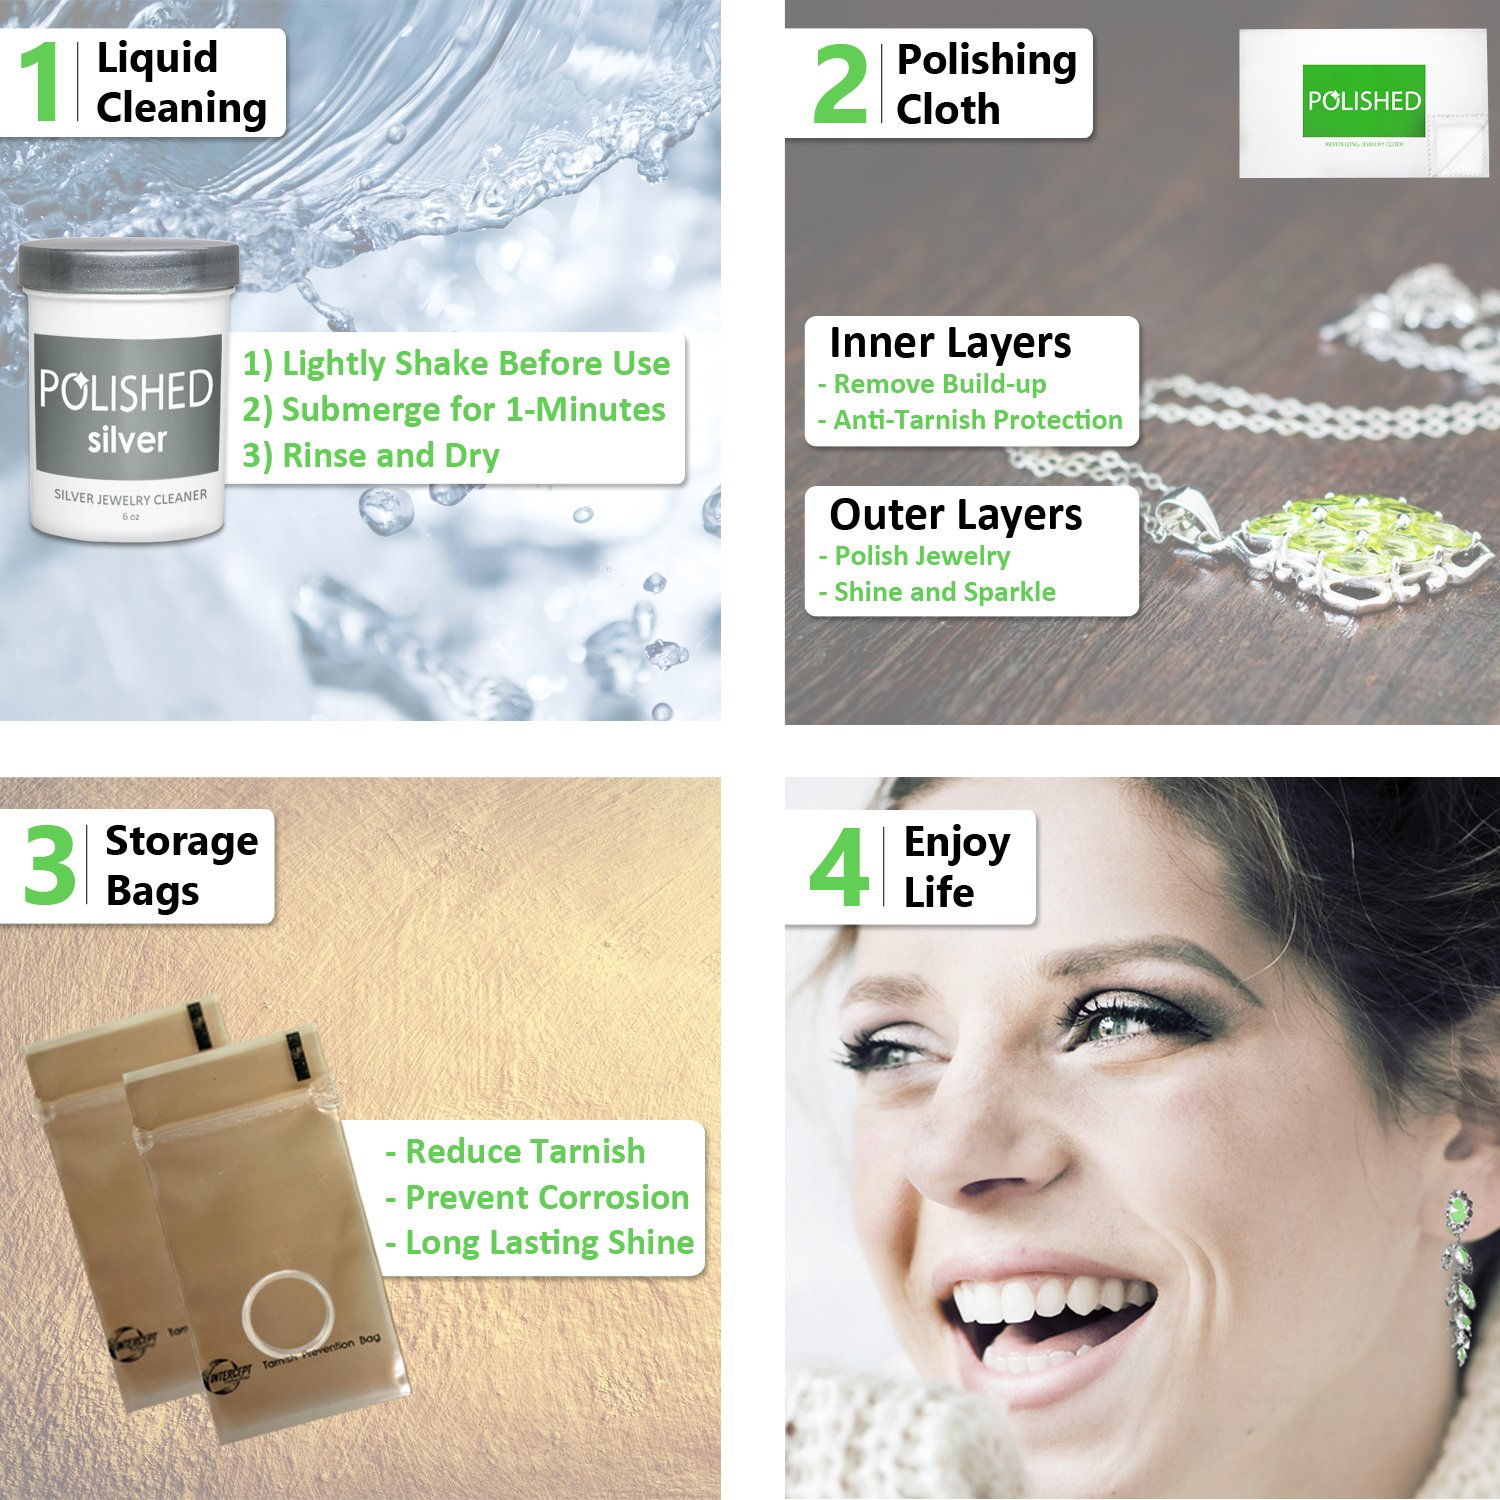 Polished Silver Jewelry Cleaner Kit - Professional Jewelry Cleaning in 1-Minute | Silver Cleaning Solution, Polishing Cloth + Anti-Tarnish Jewelry Bags | Made in USA + Best Sterling Silver Cleaner by Polished (Image #4)